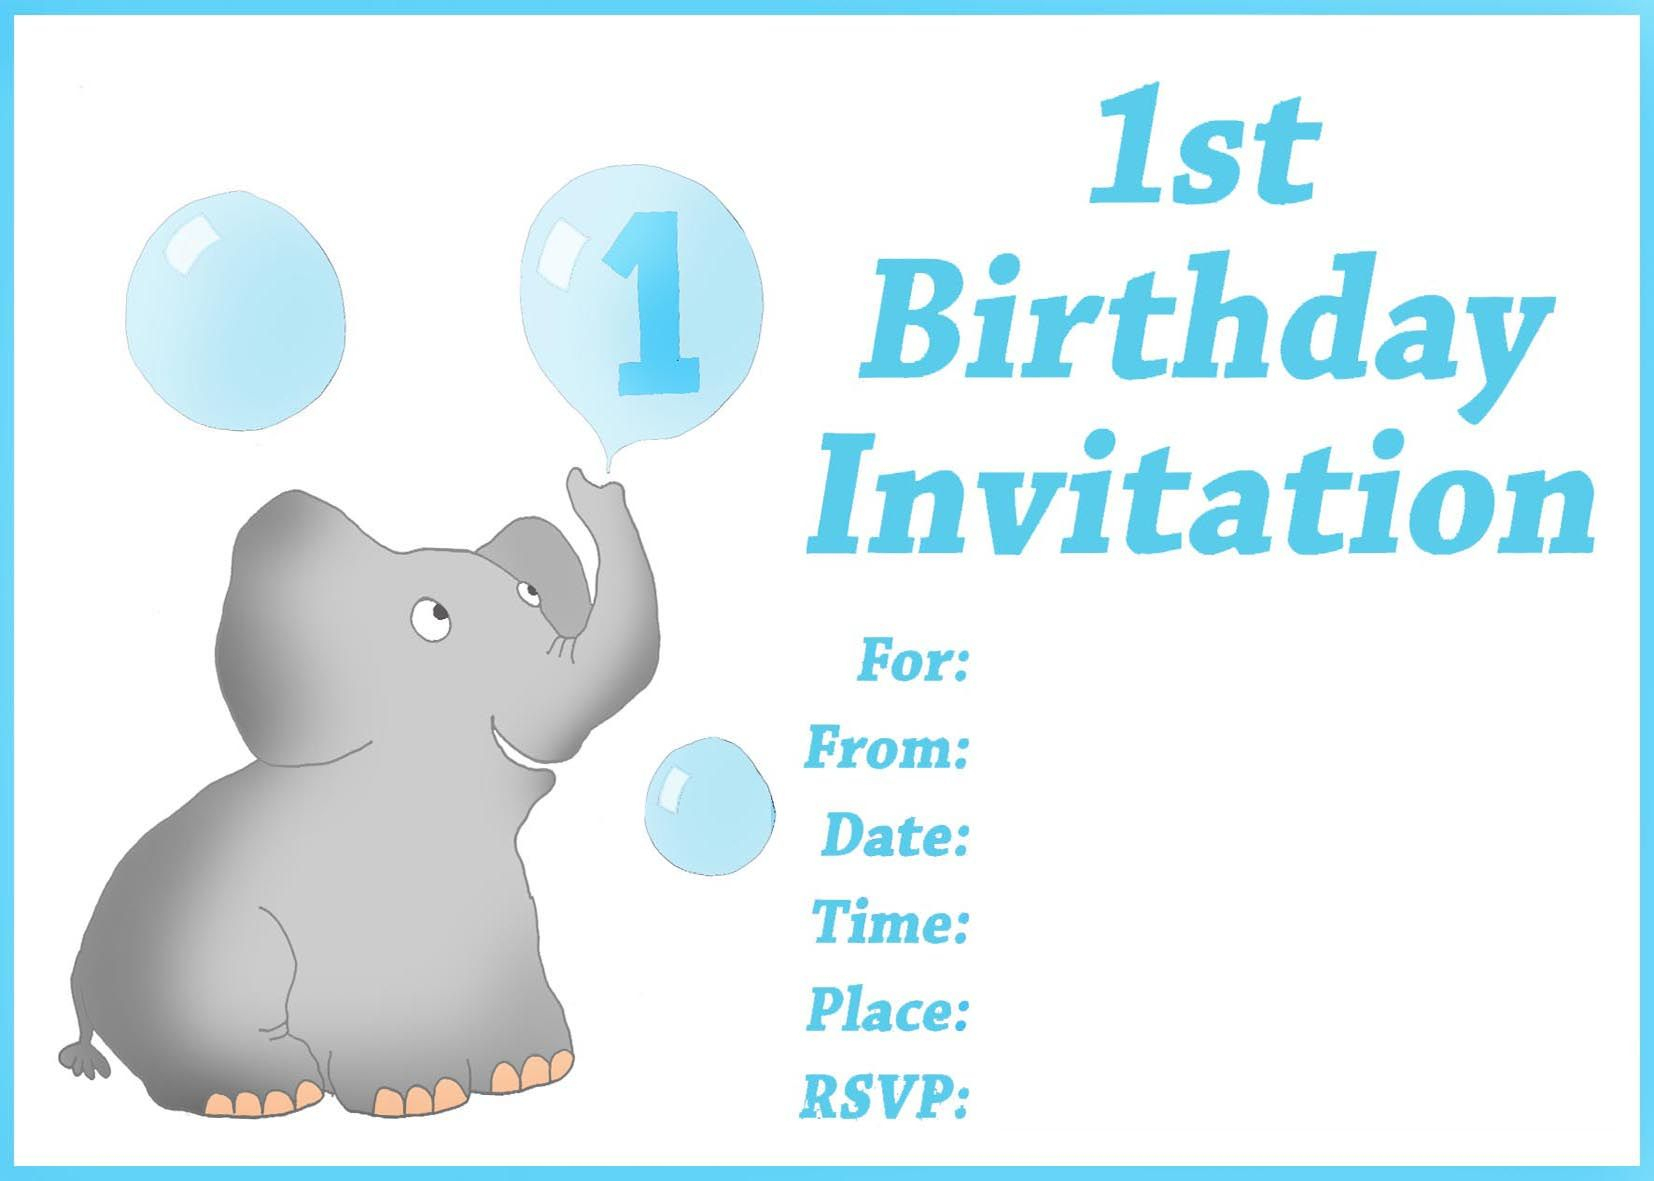 Free Printable First Birthday Invitations For Boy For Donny - Free Printable Personalized Birthday Invitation Cards